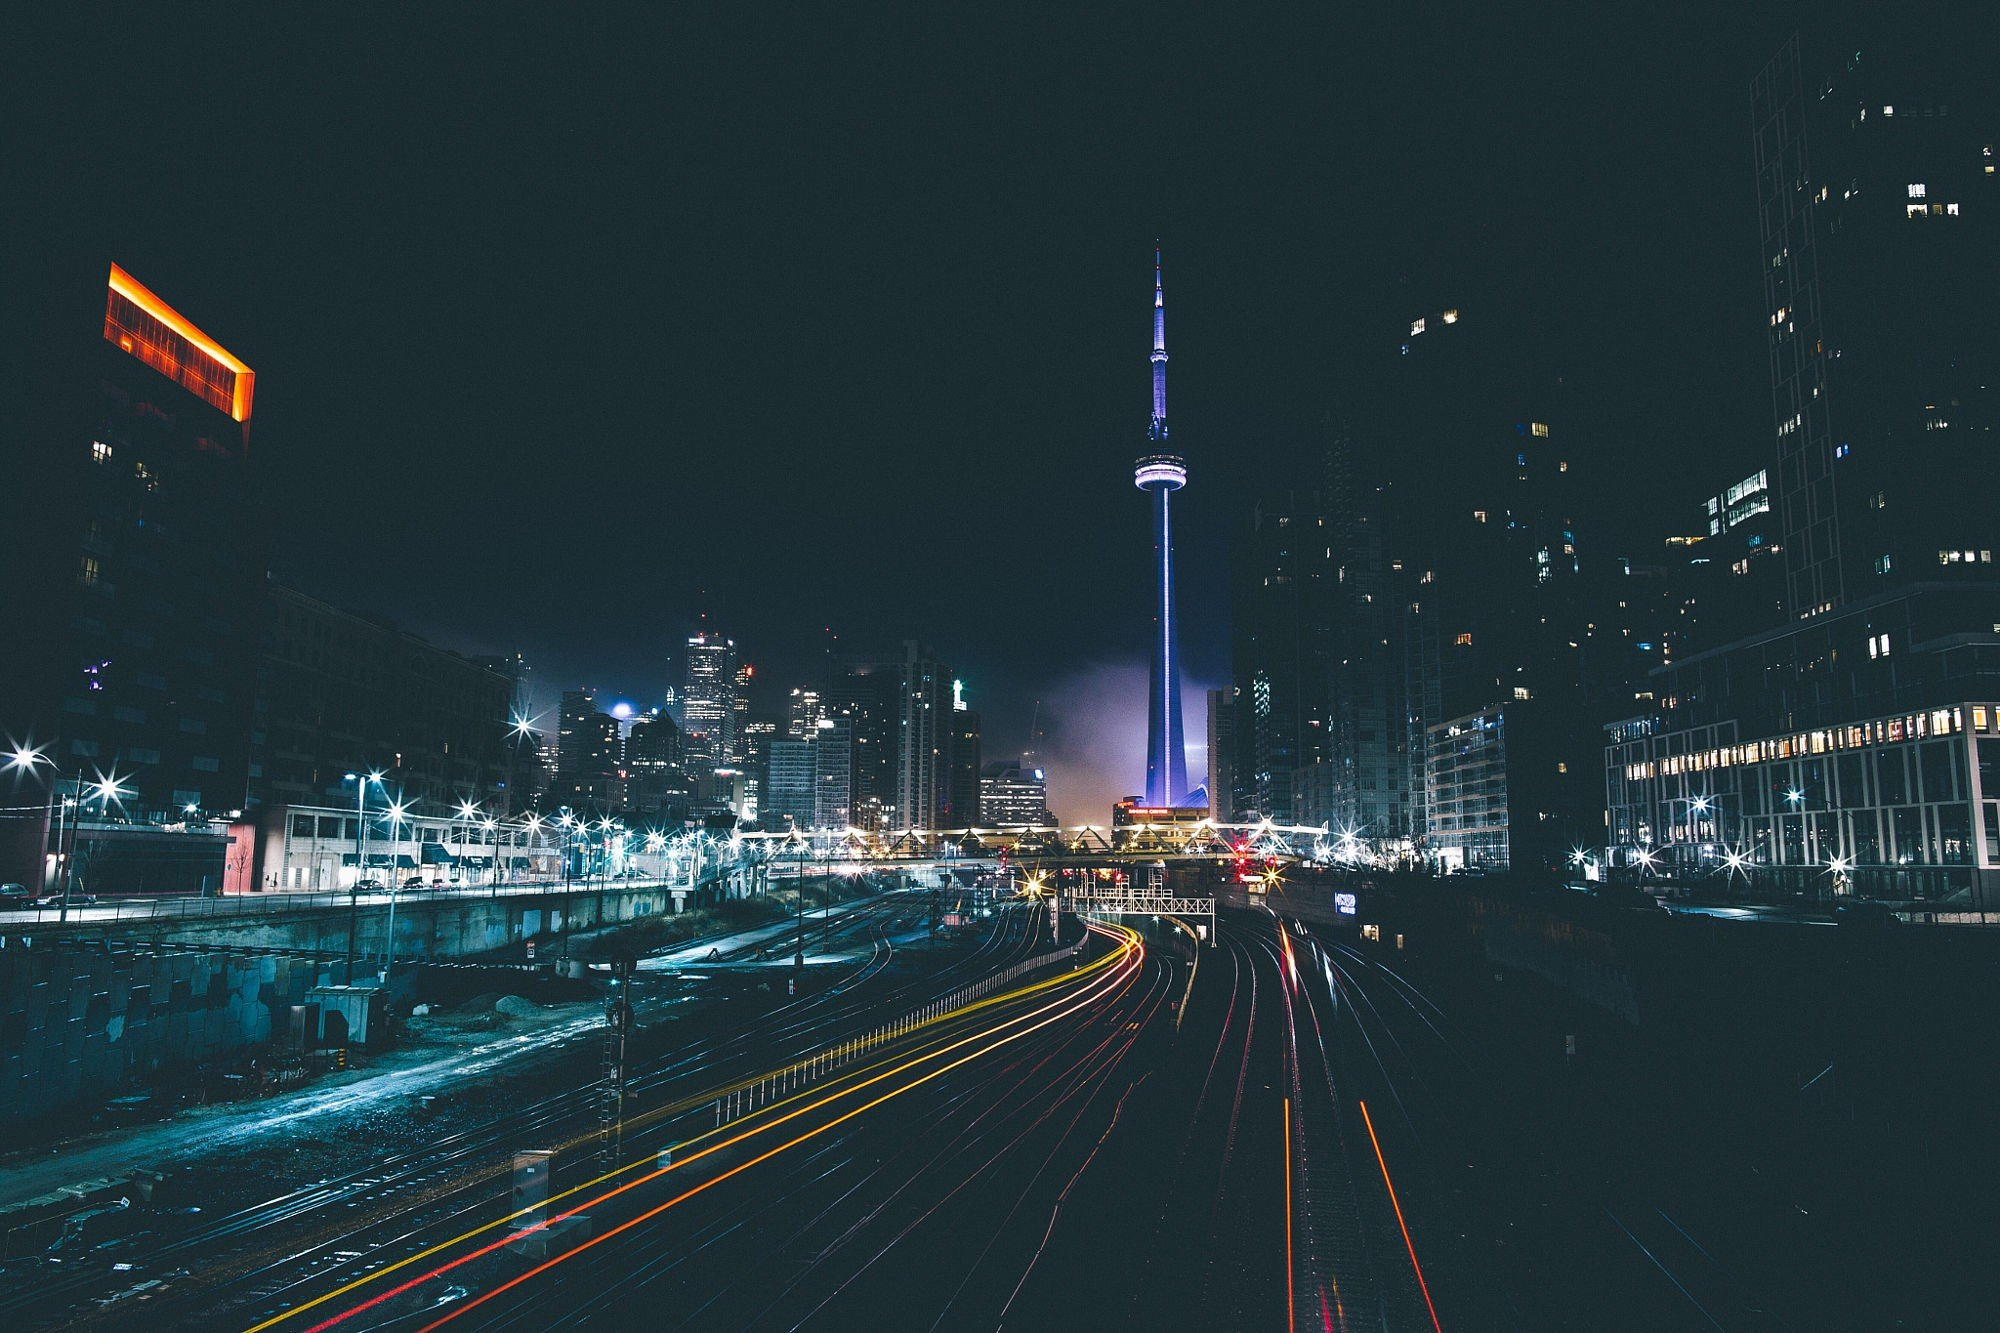 Cars Movie Hd Wallpapers 1080p Cityscape Toronto Railway Long Exposure Light Trails